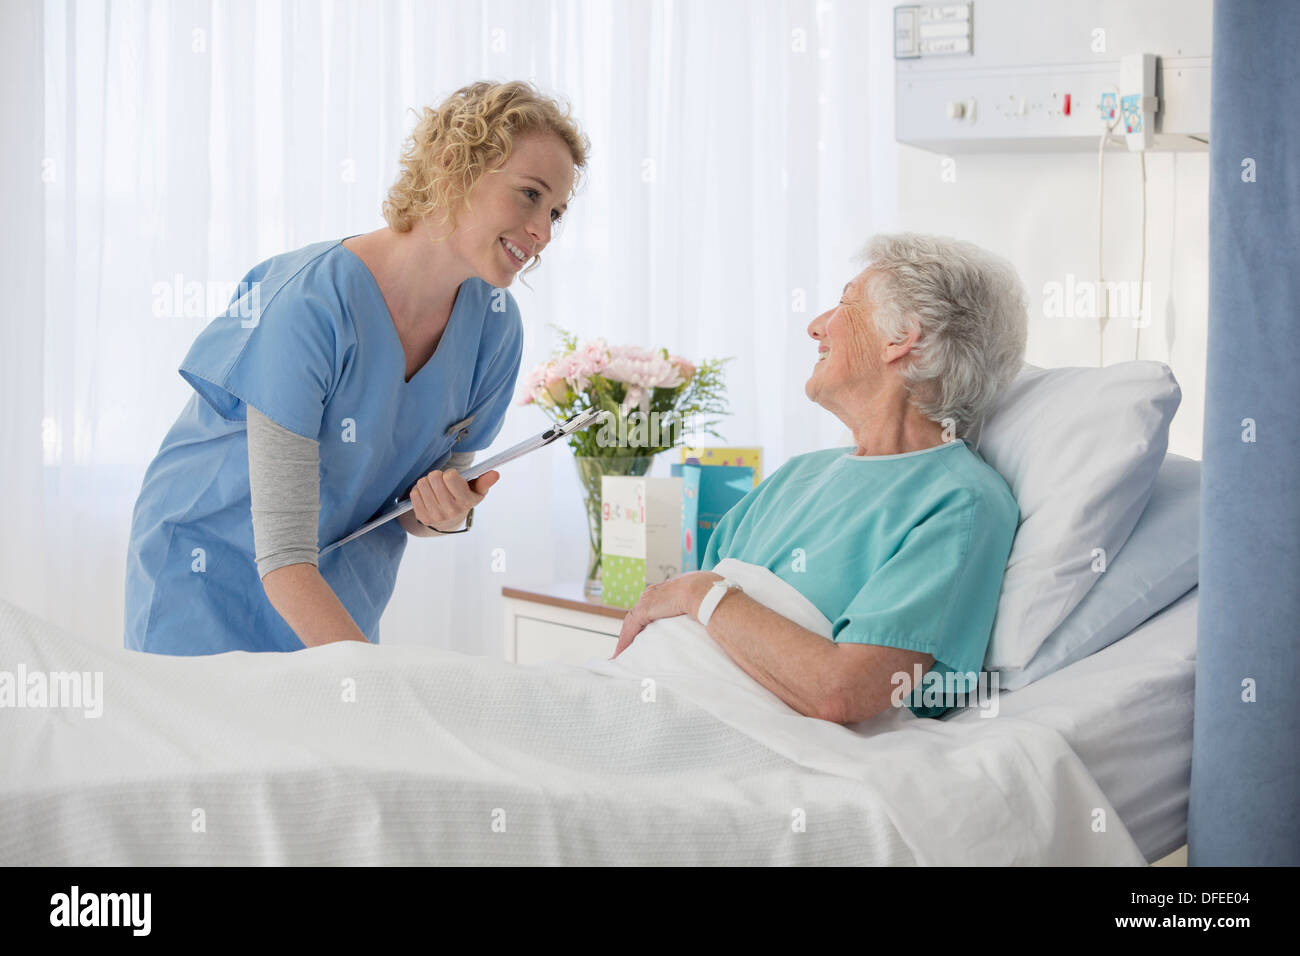 Nurse and aging patient talking in hospital room - Stock Image